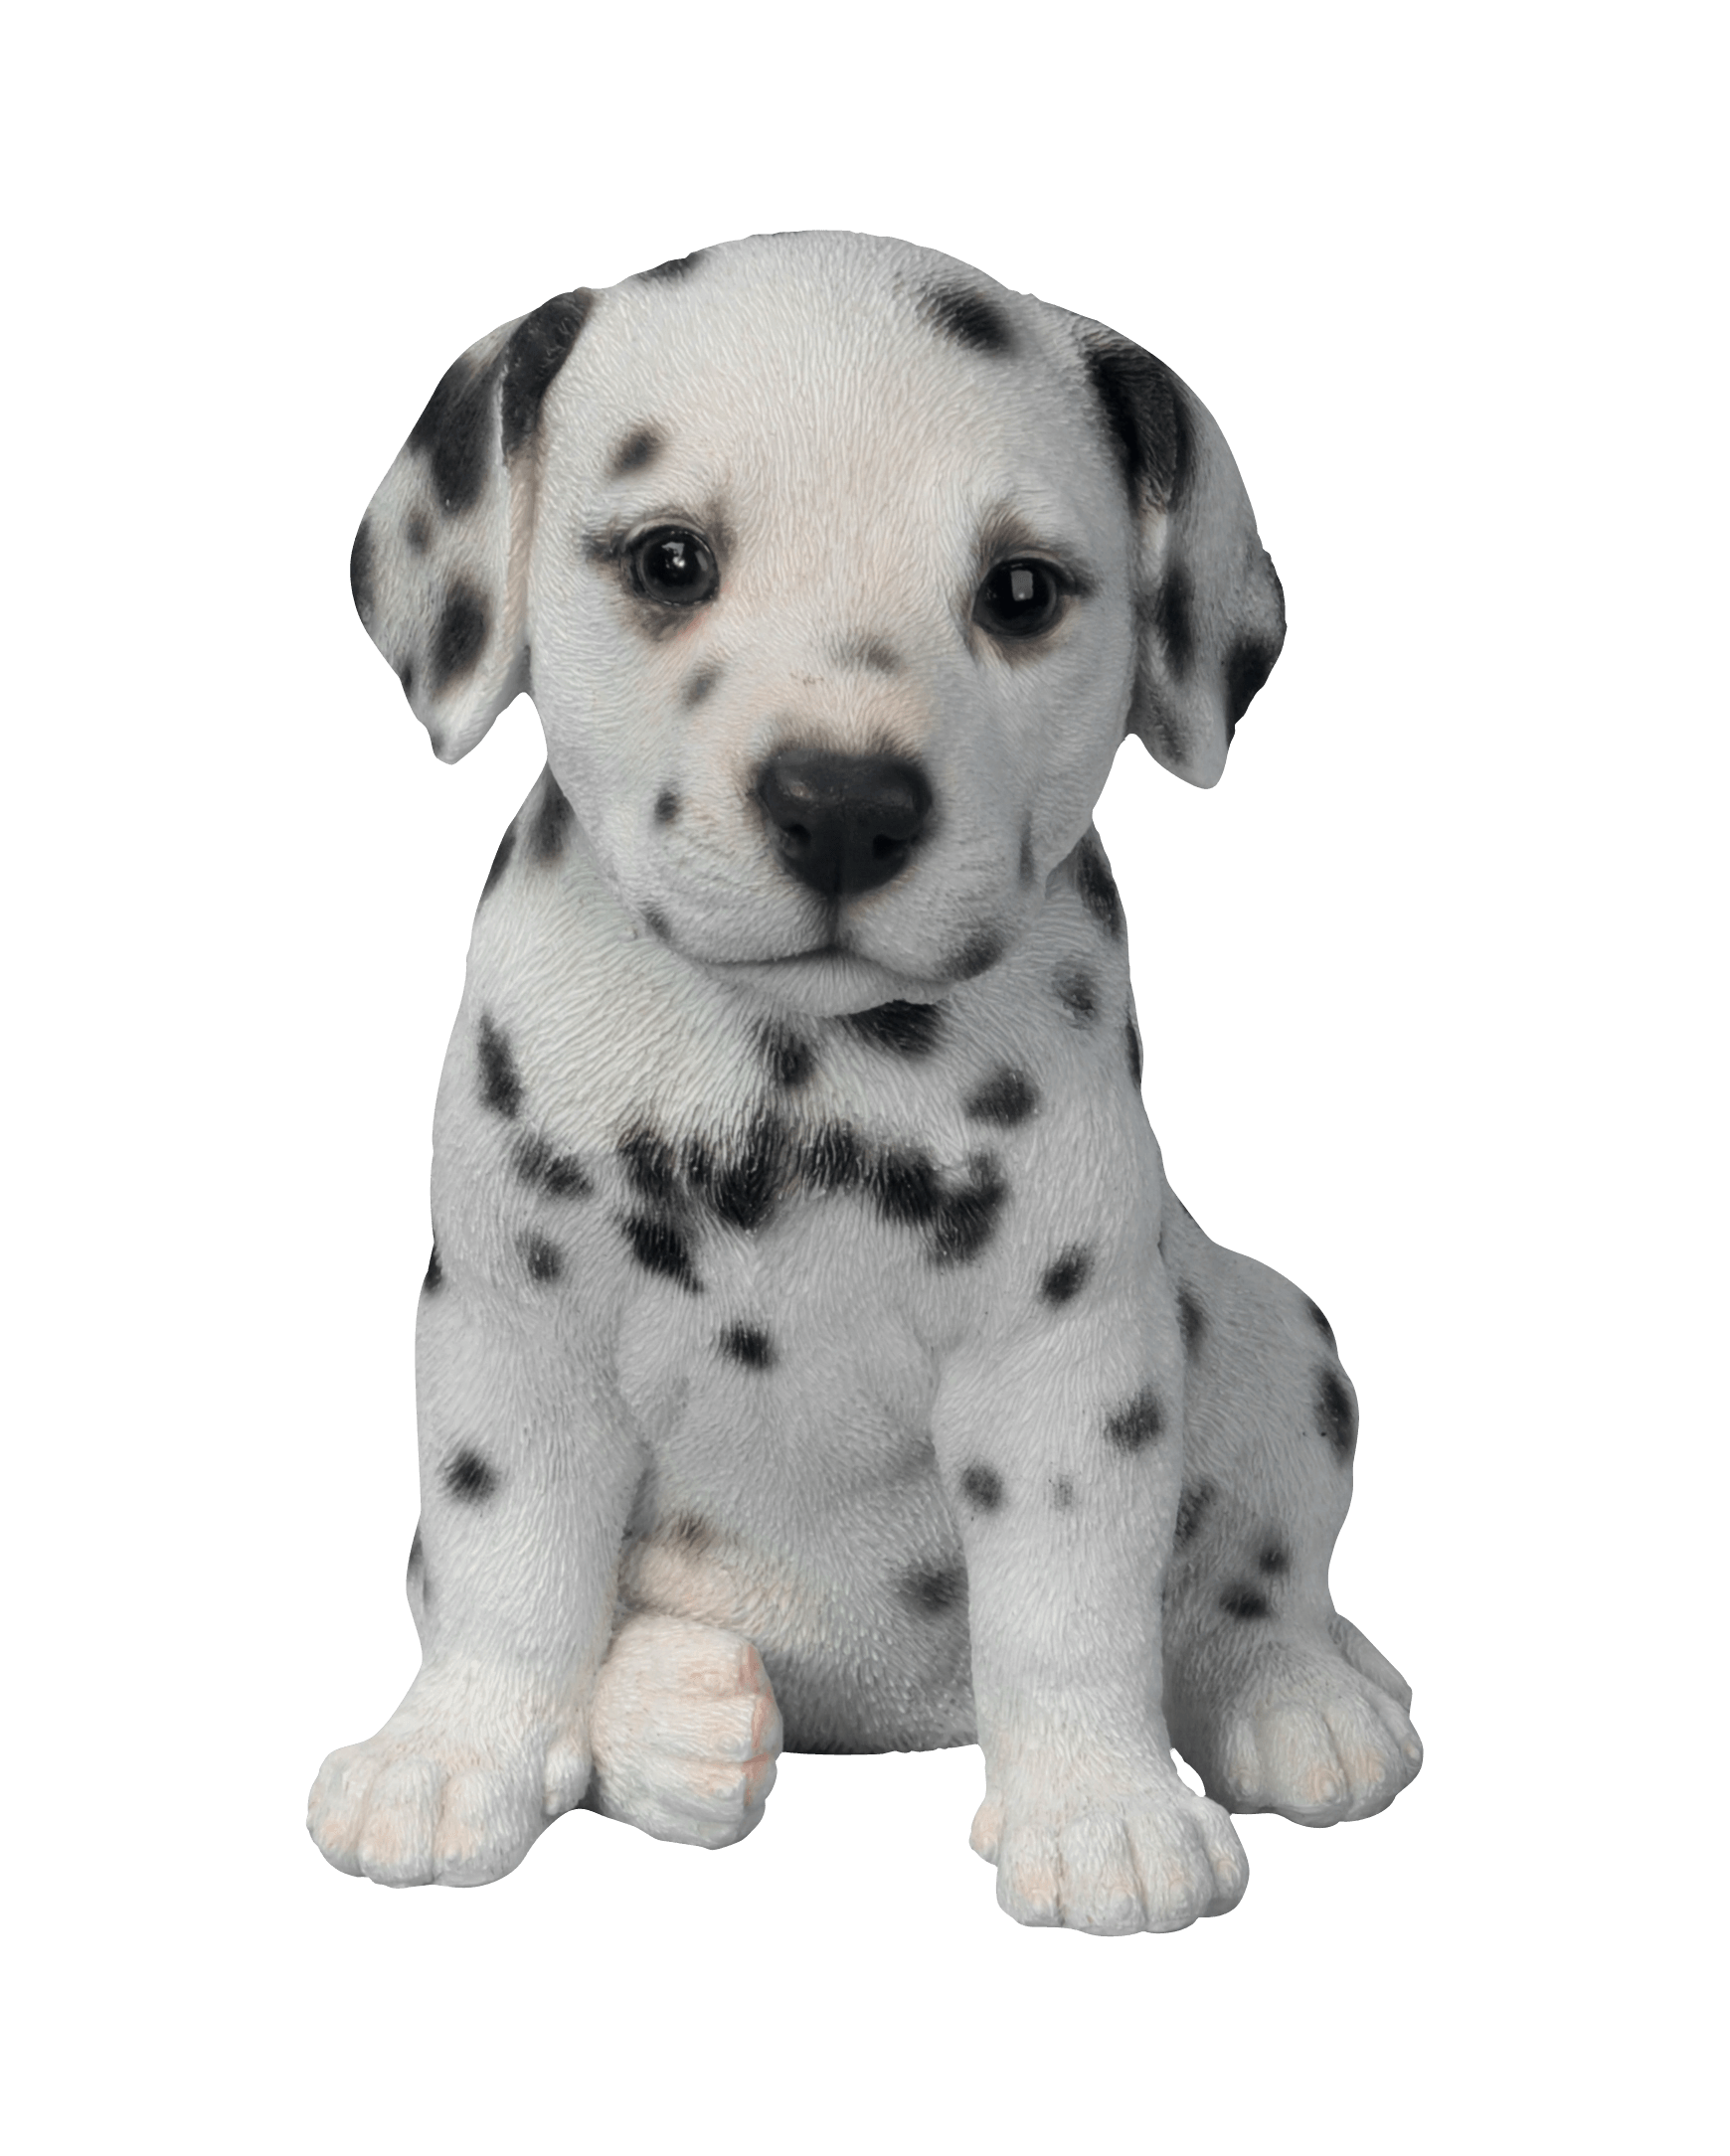 PNG Puppy - 62238